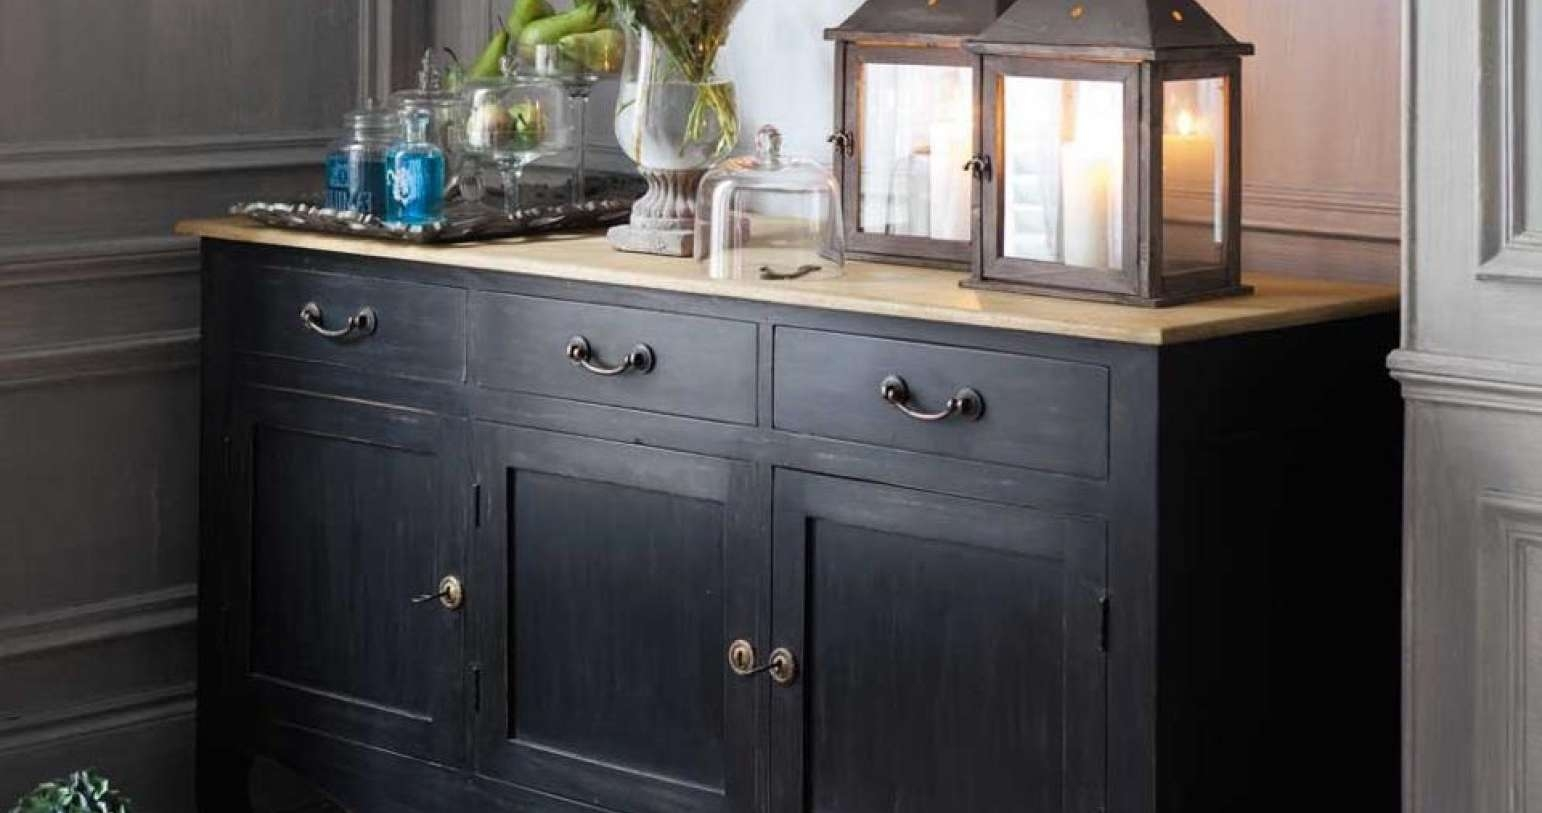 Sideboard : Farmhouse Sideboards Shocking Farmhouse Decor Pertaining To Farmhouse Sideboards (View 13 of 20)